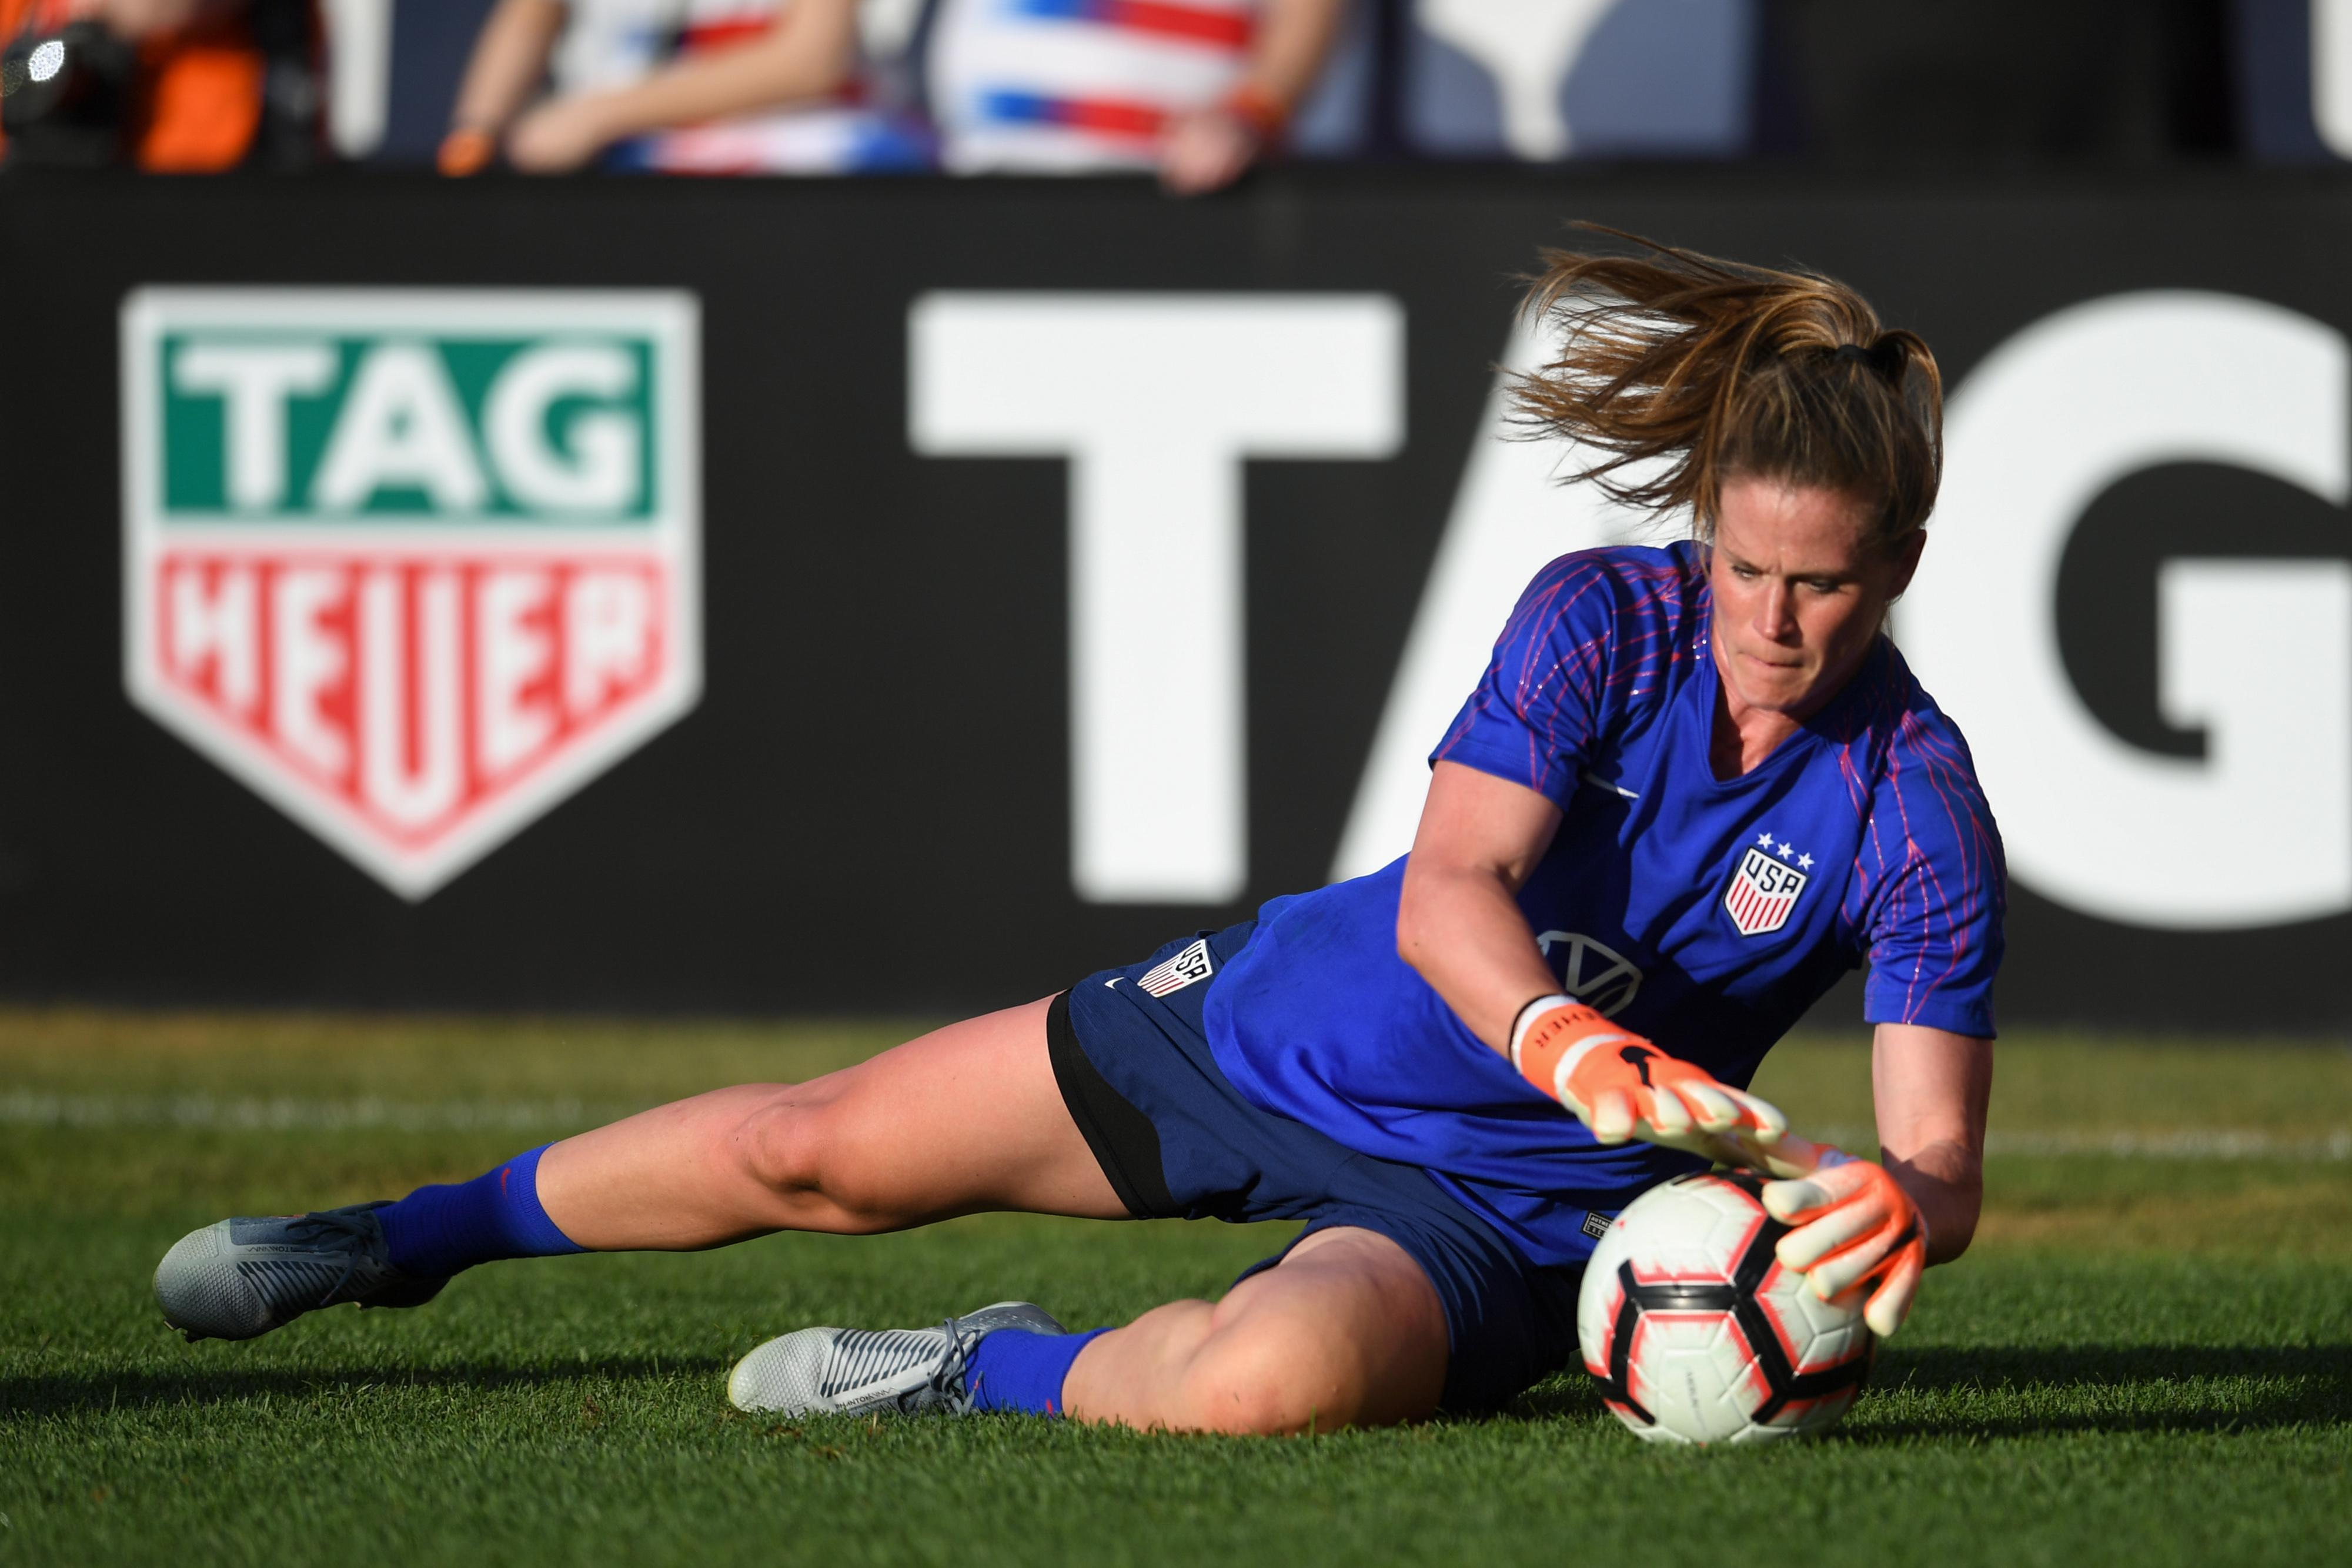 Best Goalkeepers World Cup 2019 Who Is The US Women's Team Goalie At The 2019 World Cup? Meet